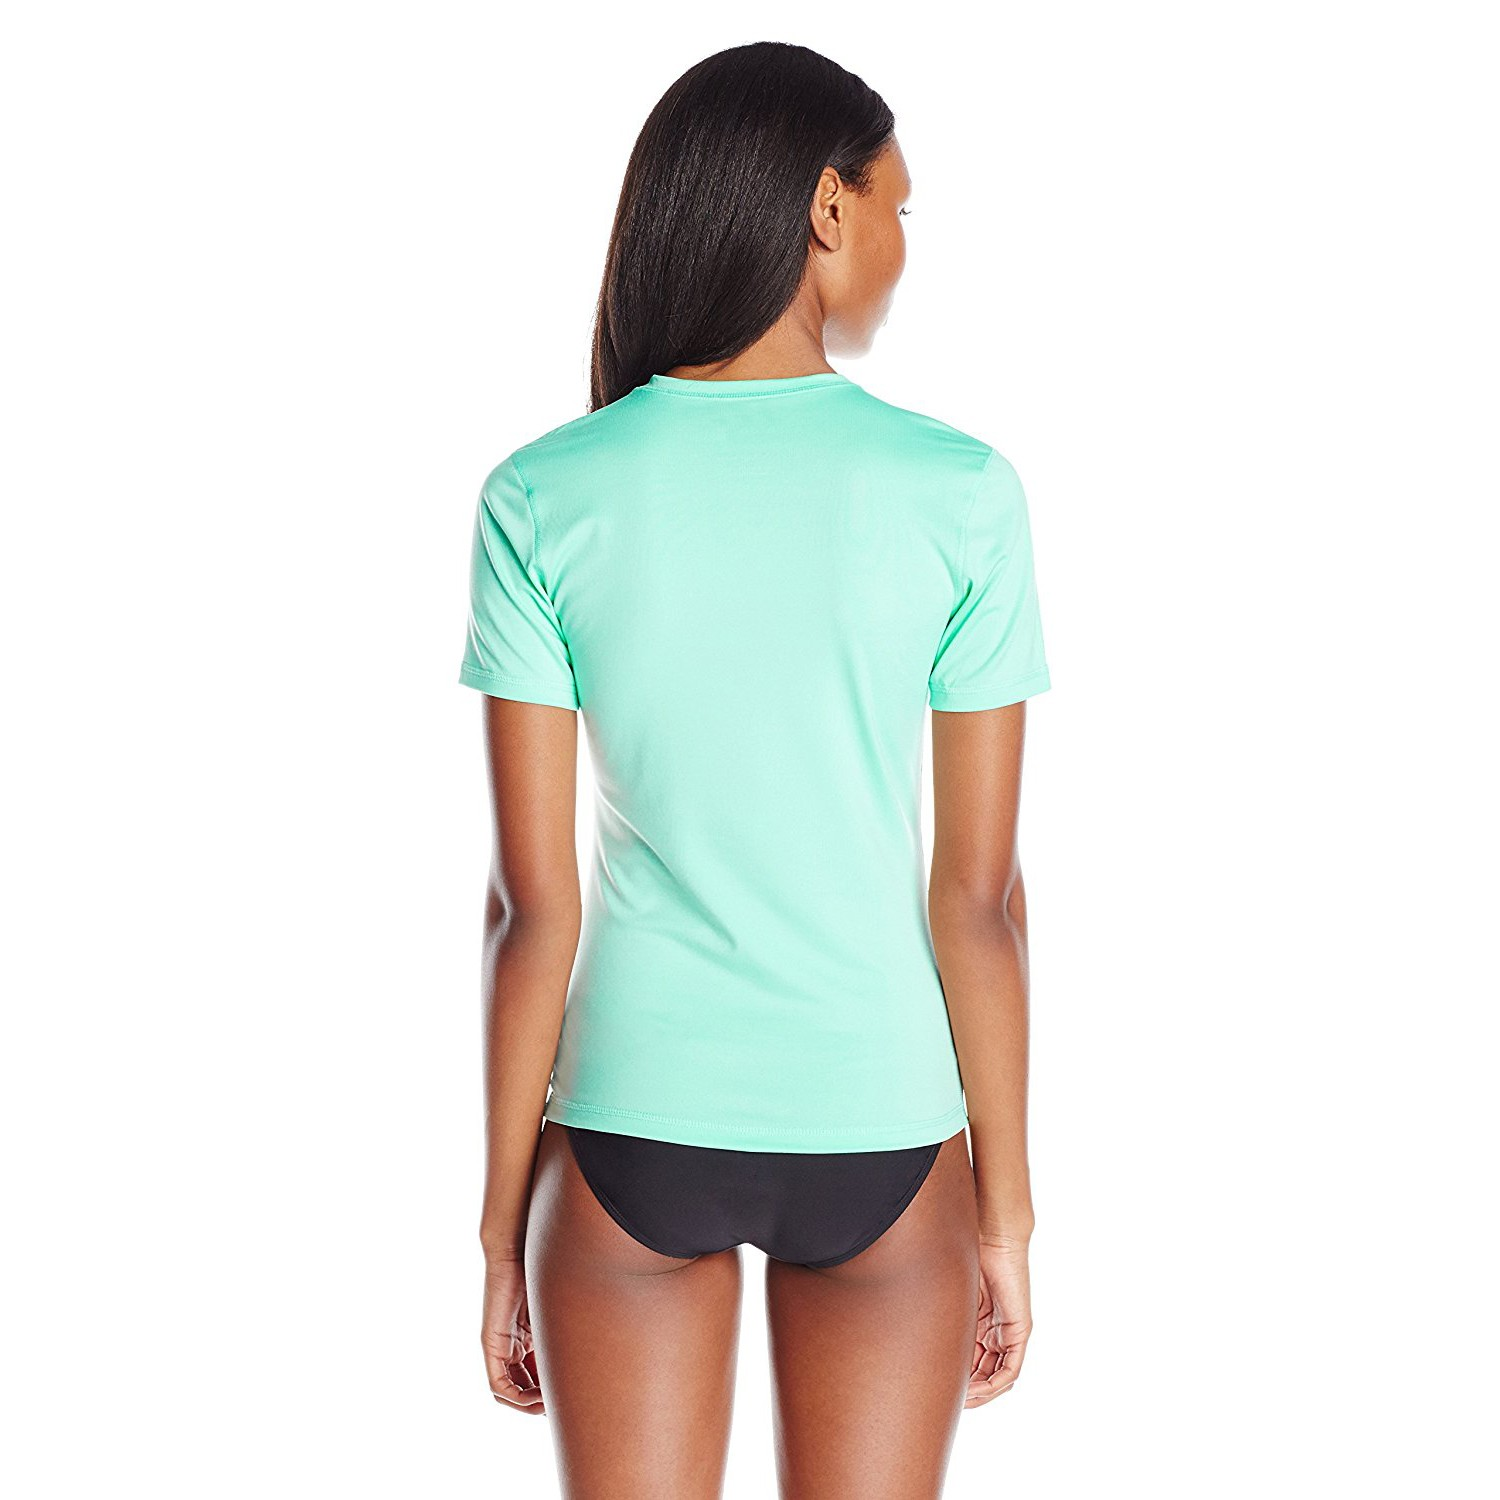 Roxy Palms Away +50 UPF Short-Sleeved Rashguard (Women's)